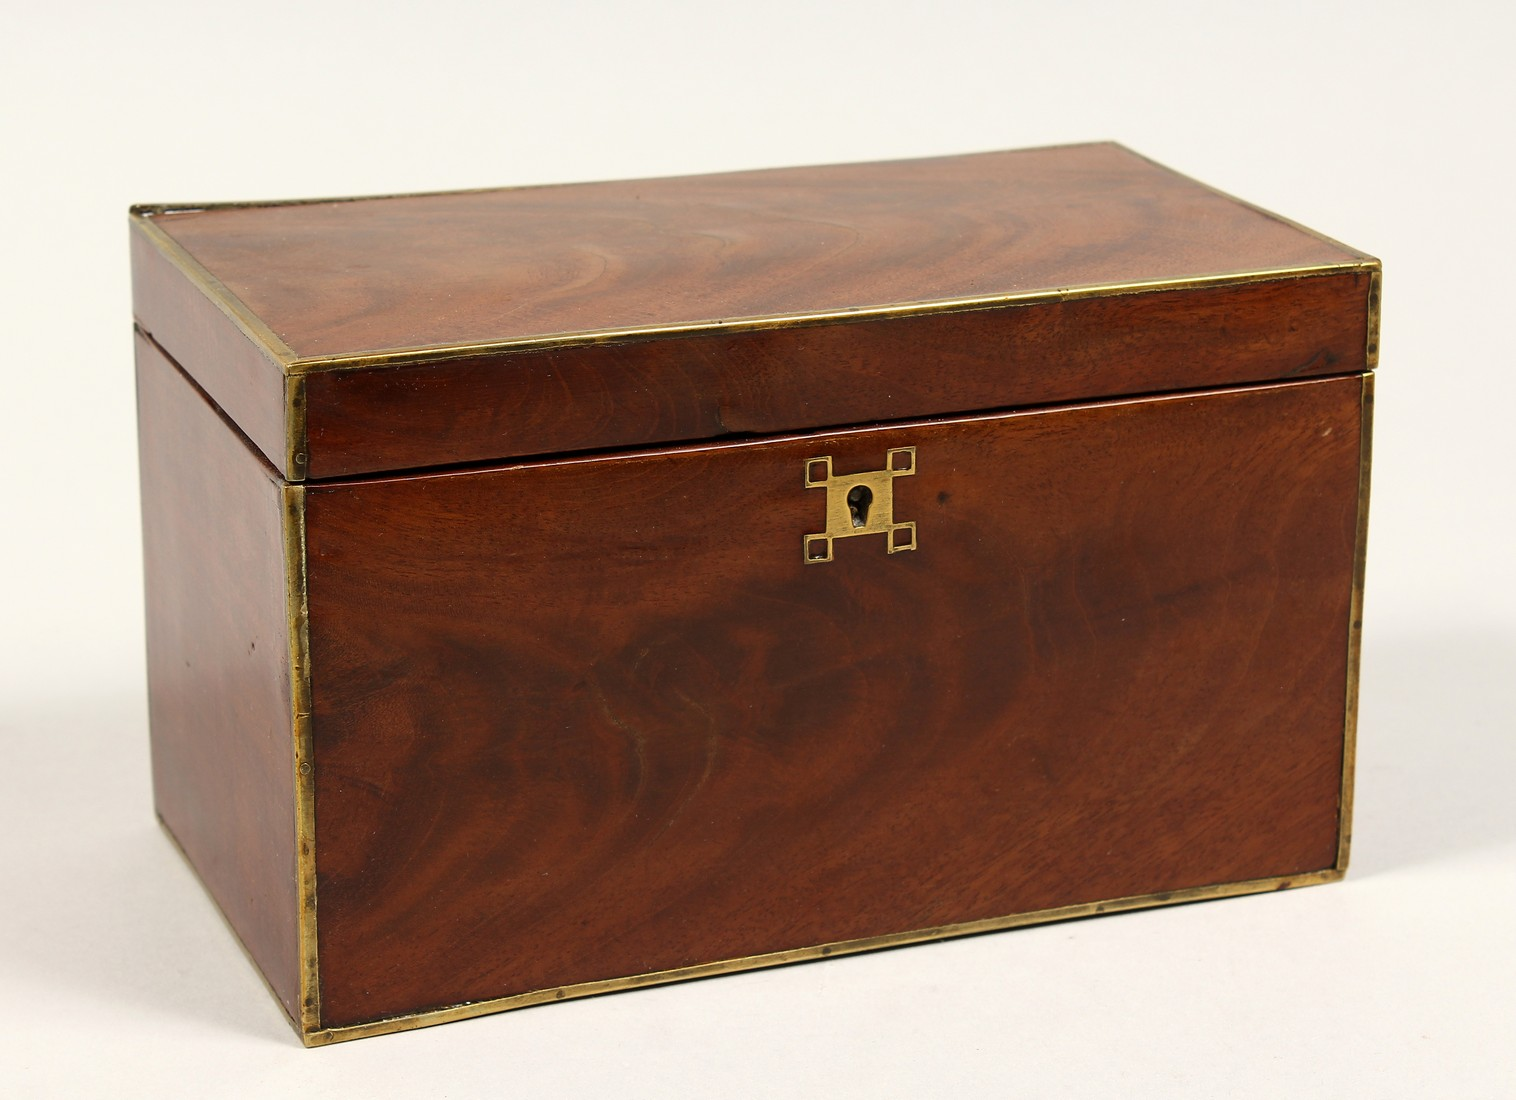 A REGENCY MAHOGANY TWO DIVISION TEA CADDY with brass stringing. 8ins long